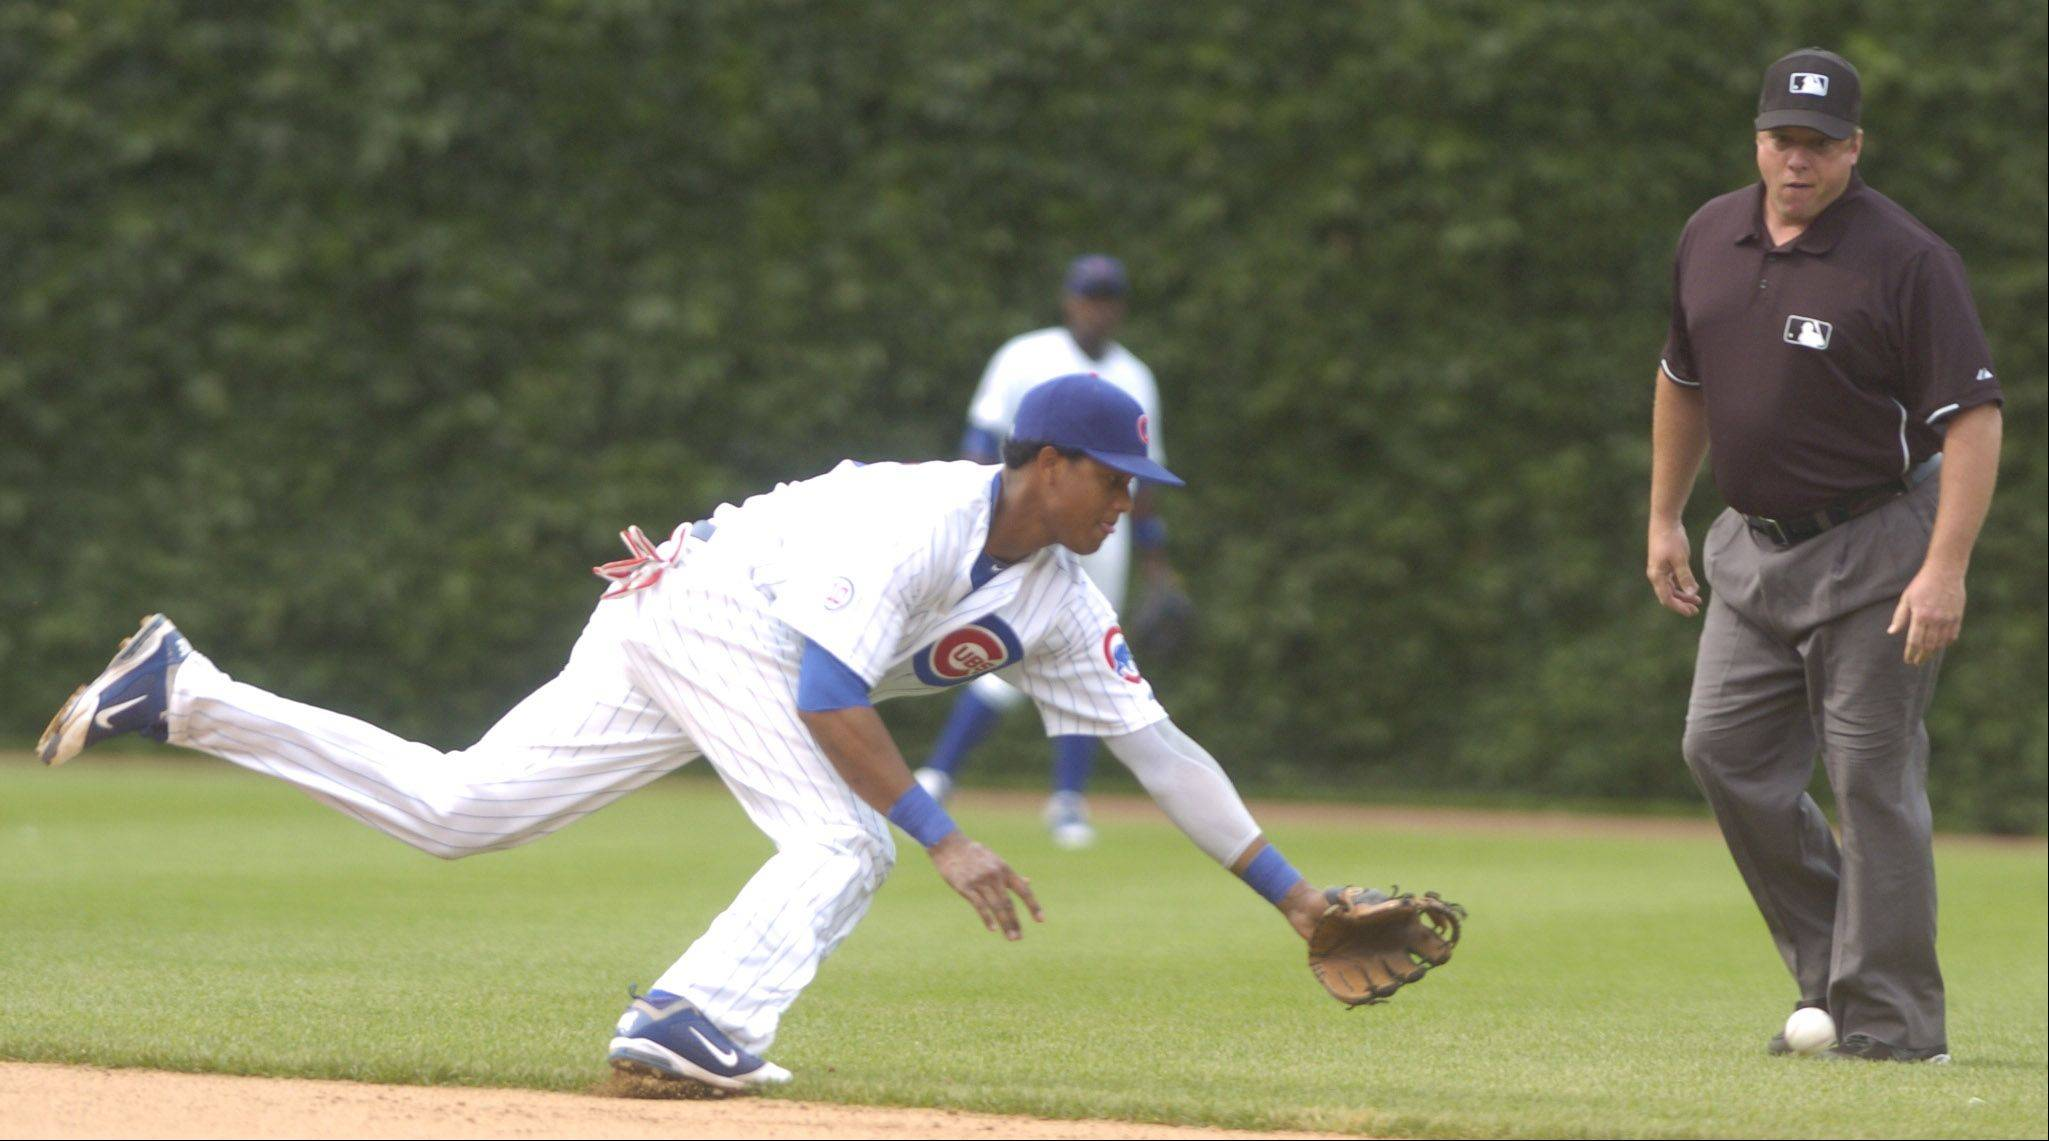 Cubs shortstop Starlin Castro tries to field a base hit by Alex Rios of the White Sox during the ninth inning.